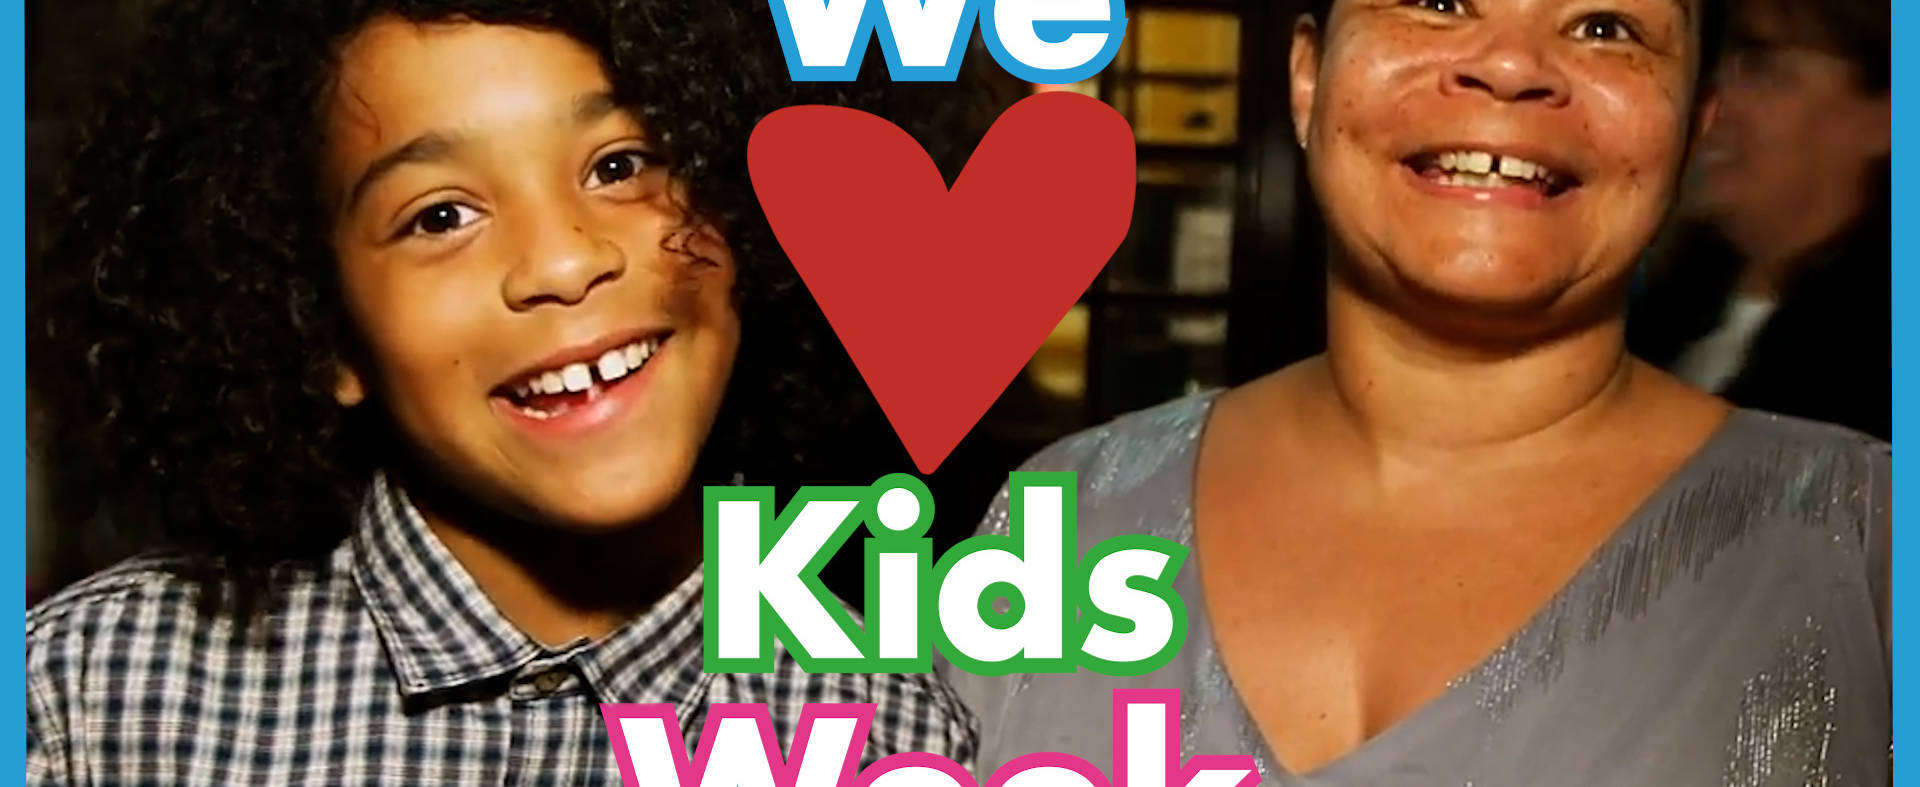 Kids Week photo for editorial use 3